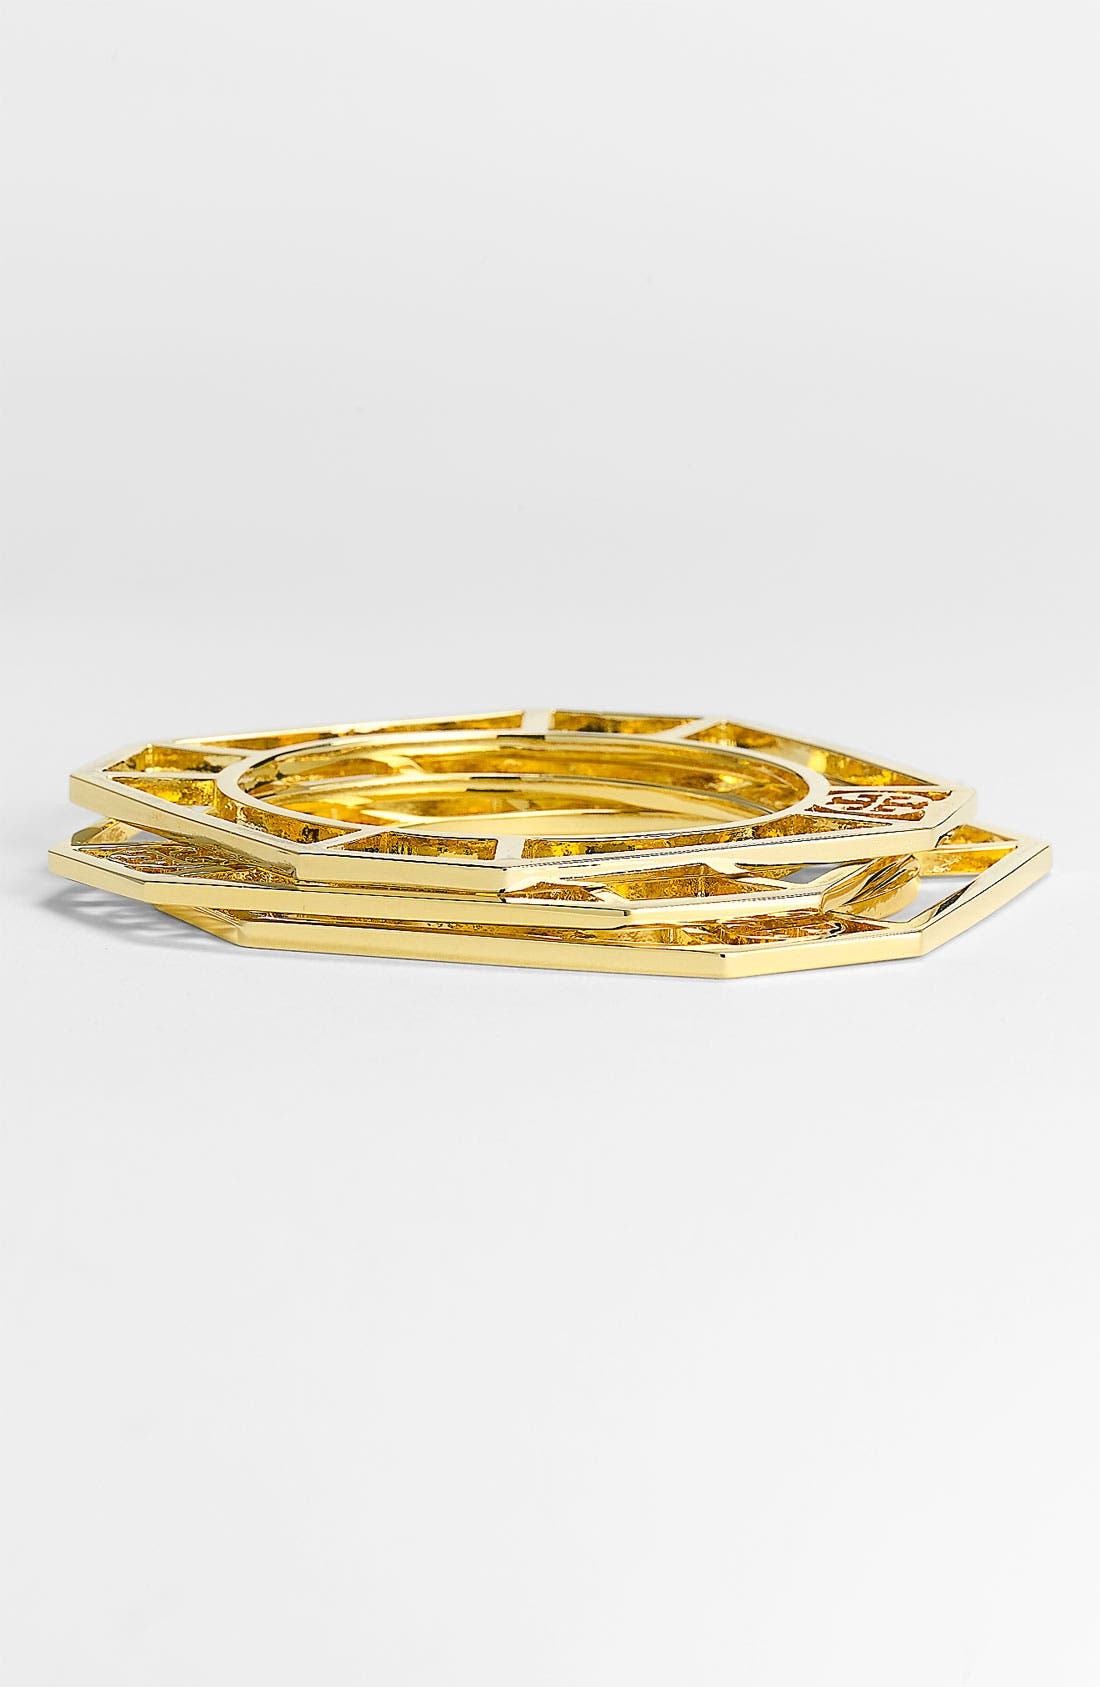 Alternate Image 1 Selected - Tory Burch 'Audrina' Cutout Bangles (Set of 3)